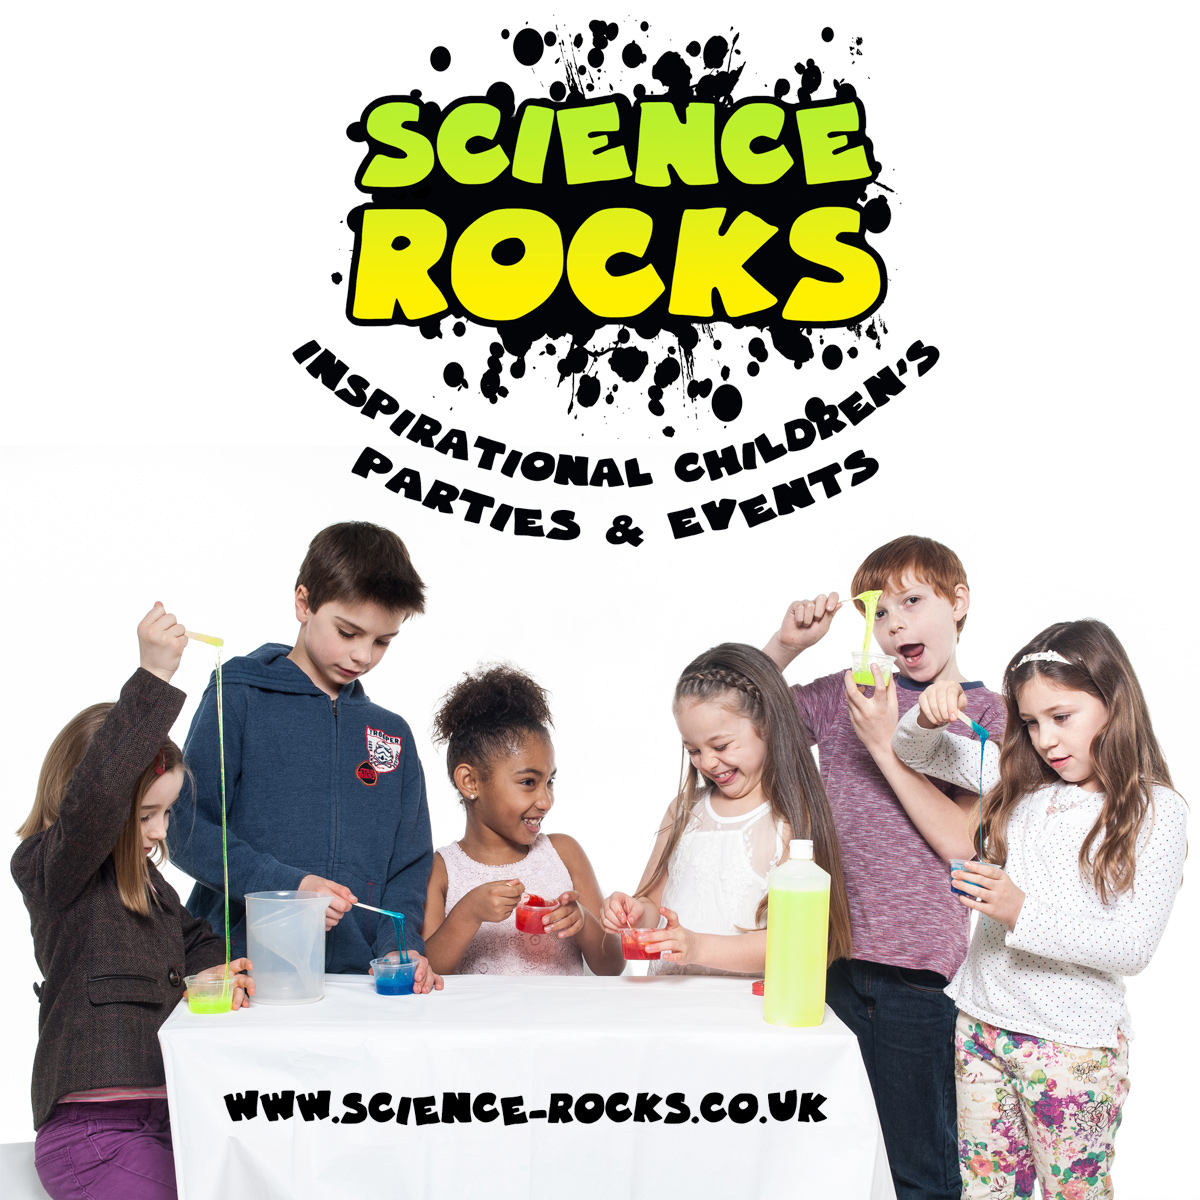 Science Rocks Birthday Parties For Boys & Girls Aged 5-12